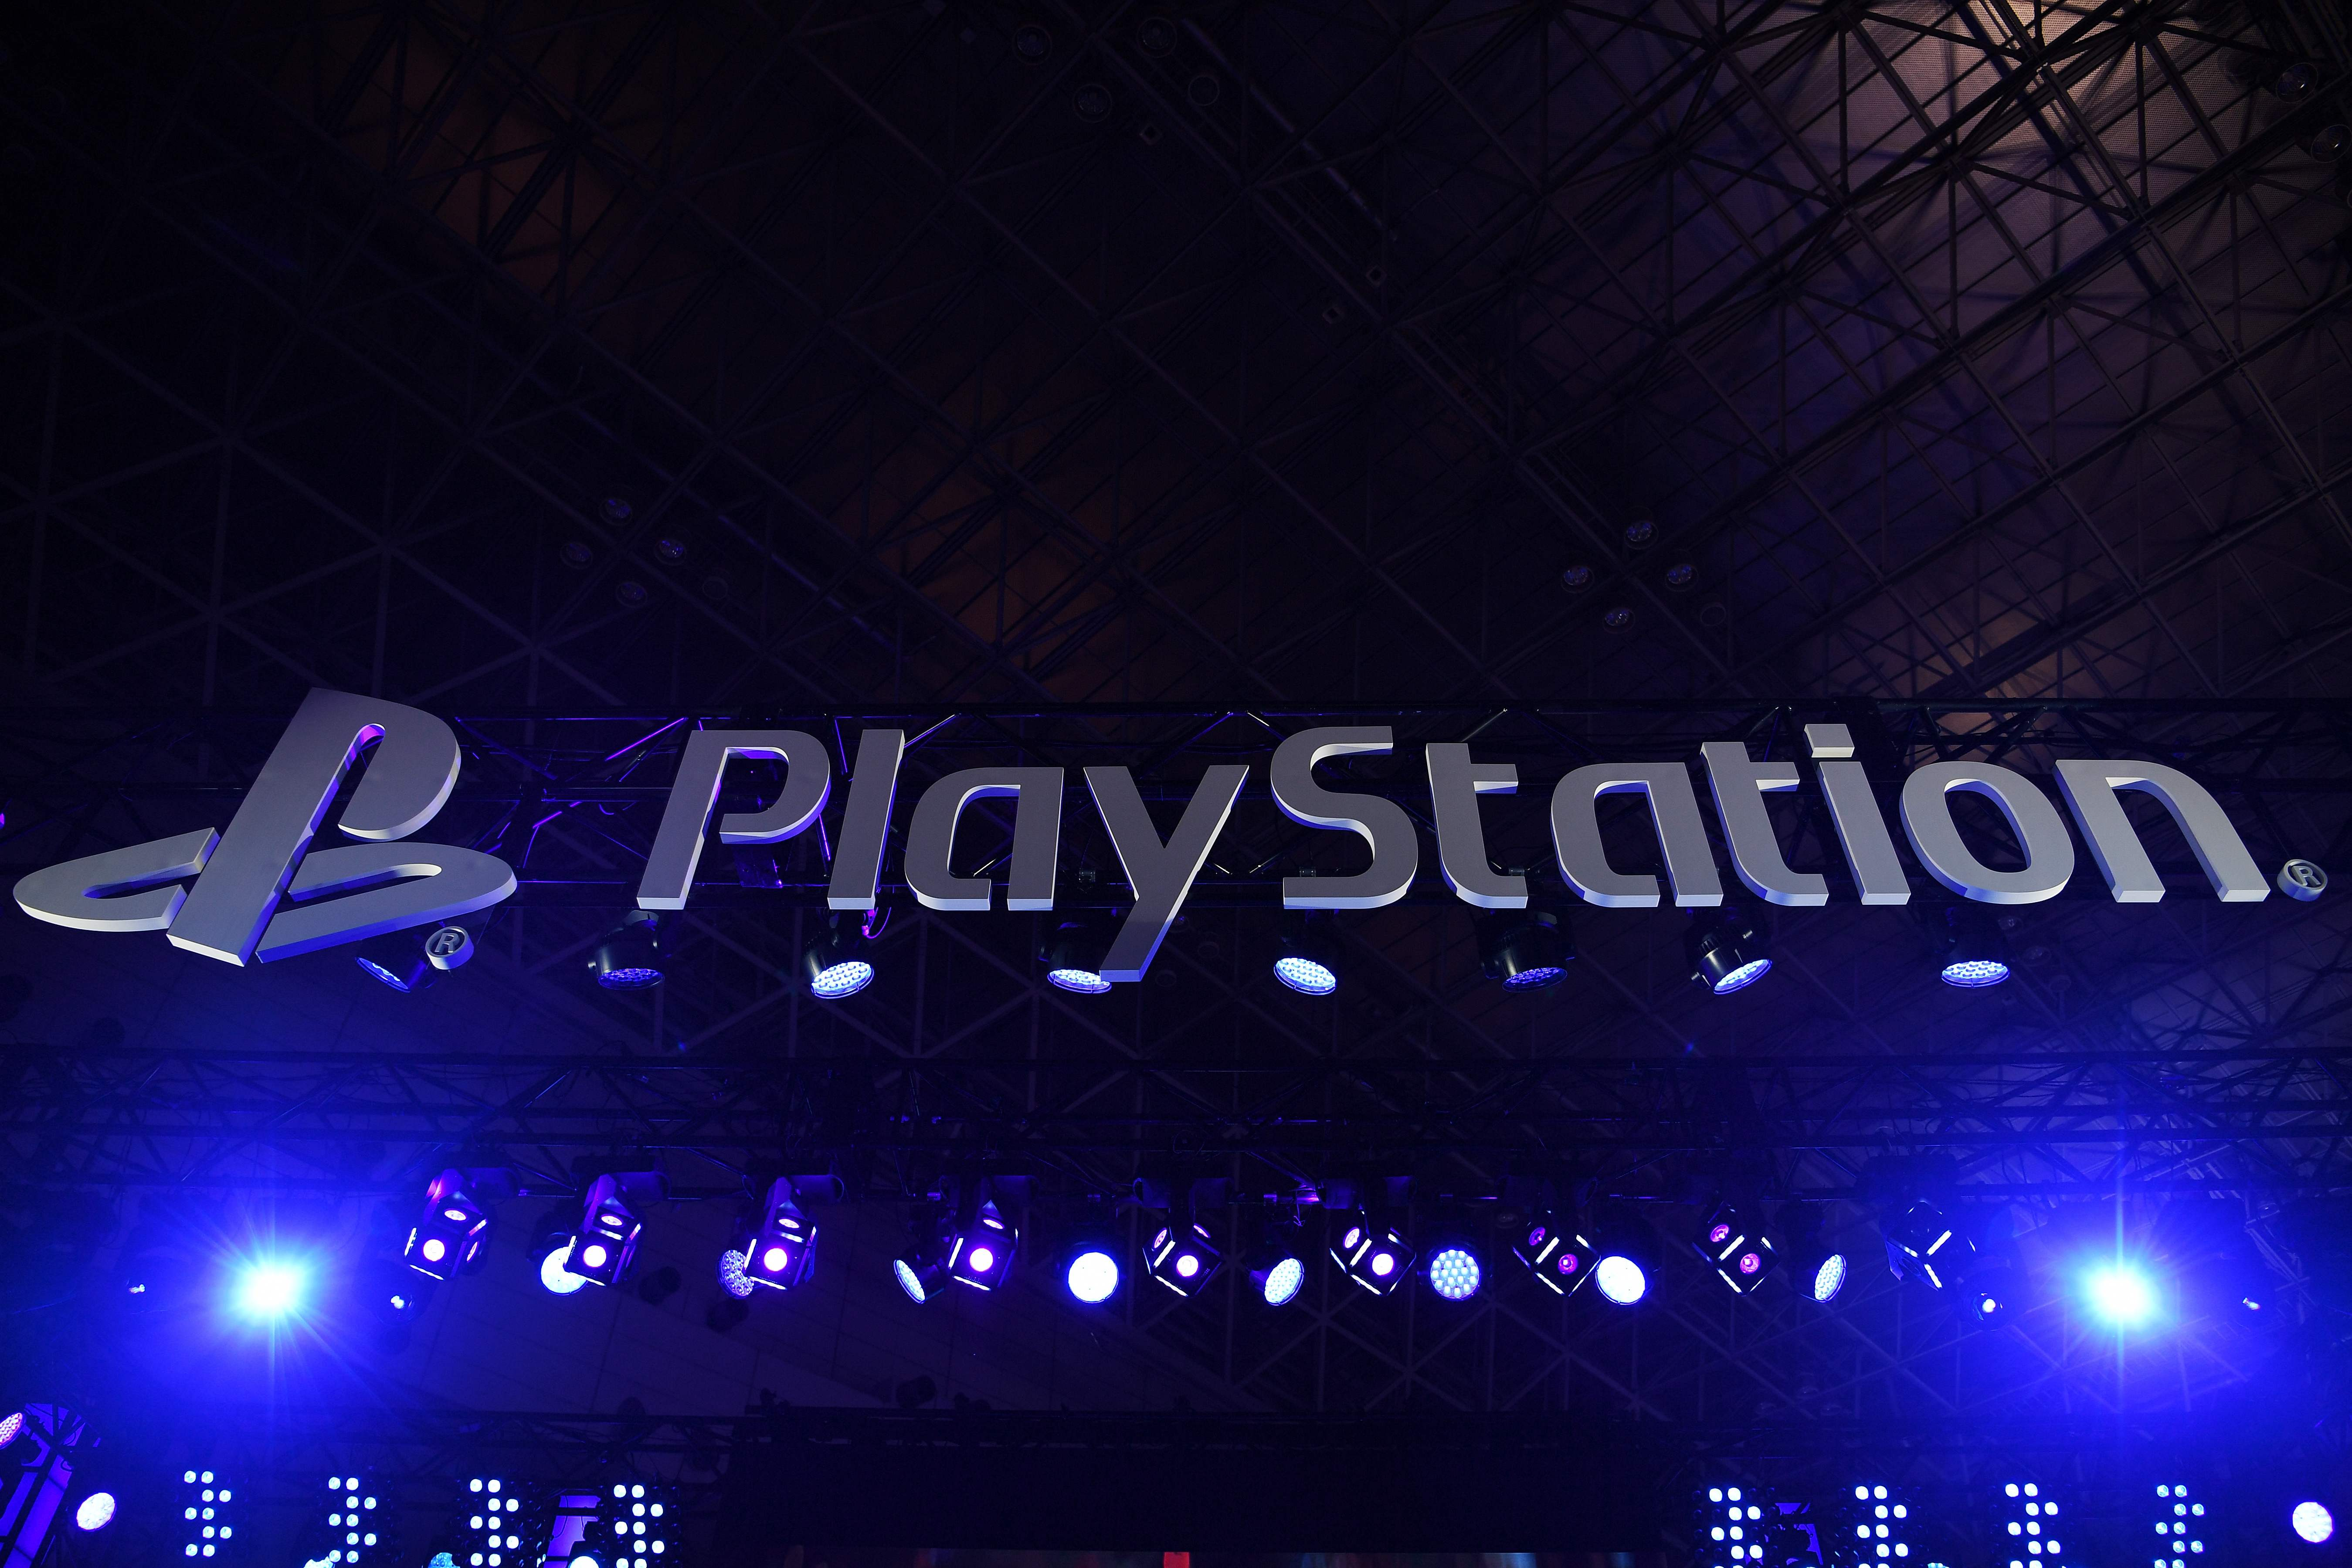 Playstation 5 Announced For 2020 Holiday Season